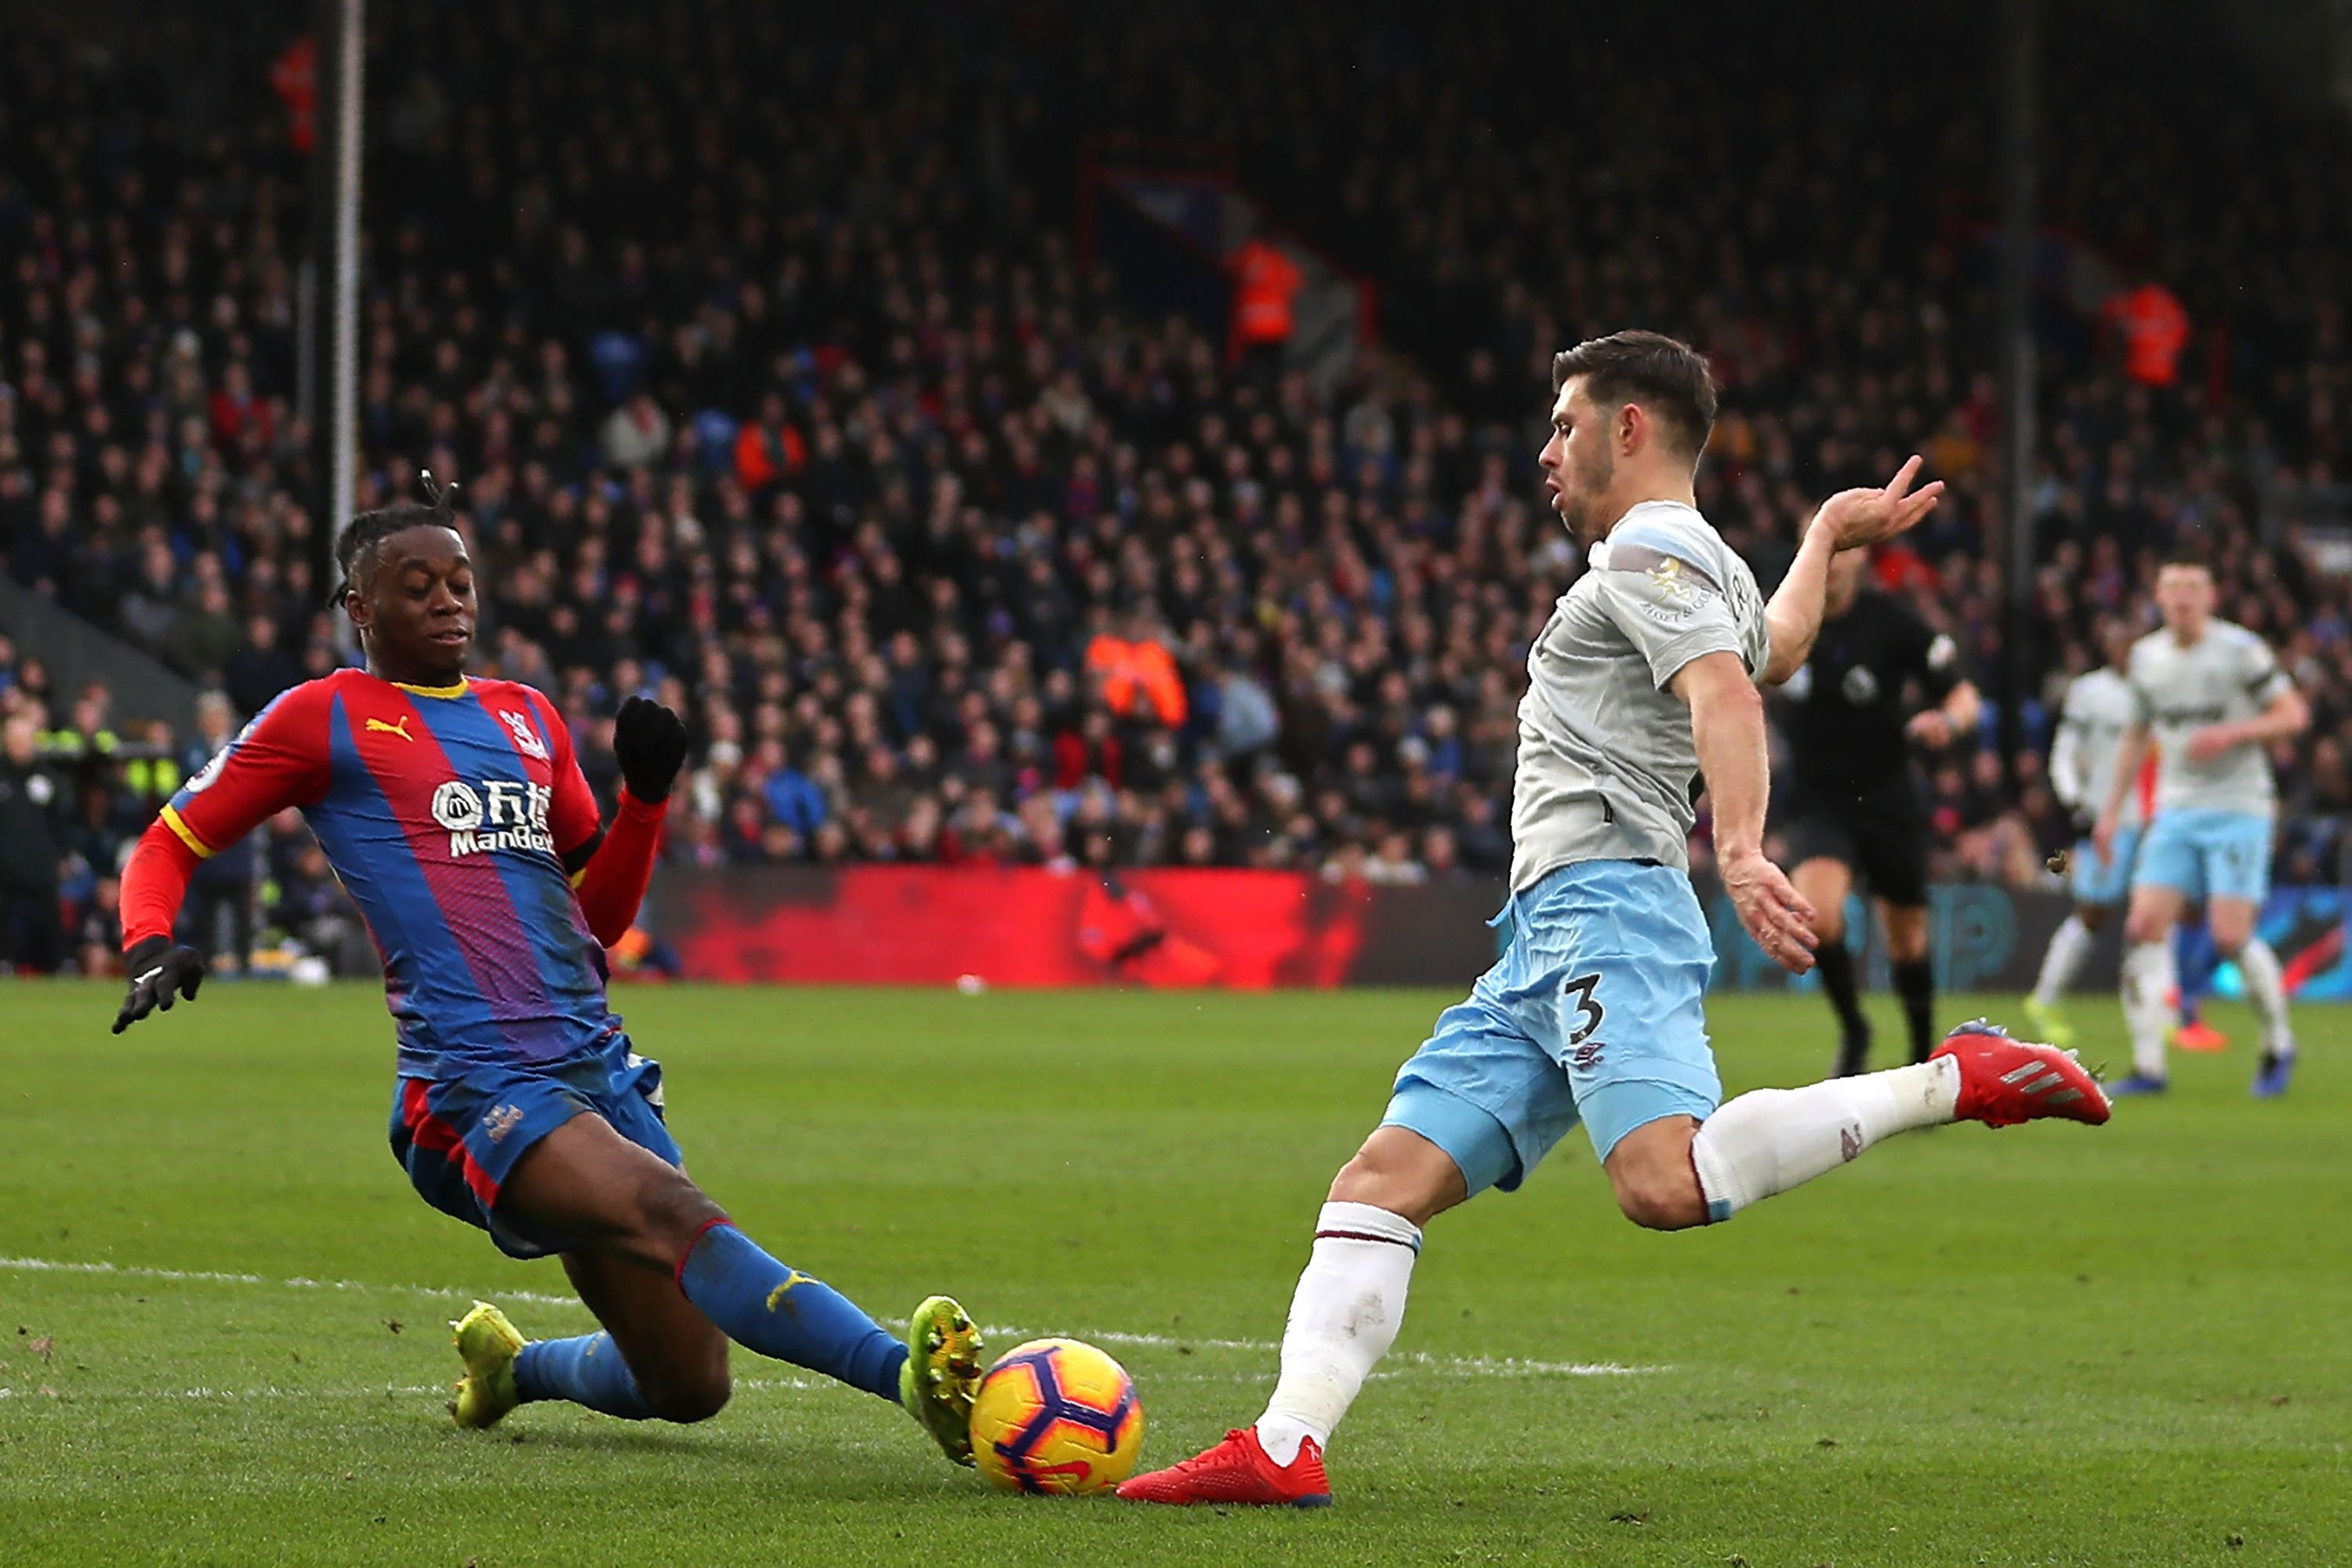 Wan-Bissaka, 21, has featured in 28 games for the Eagles this season